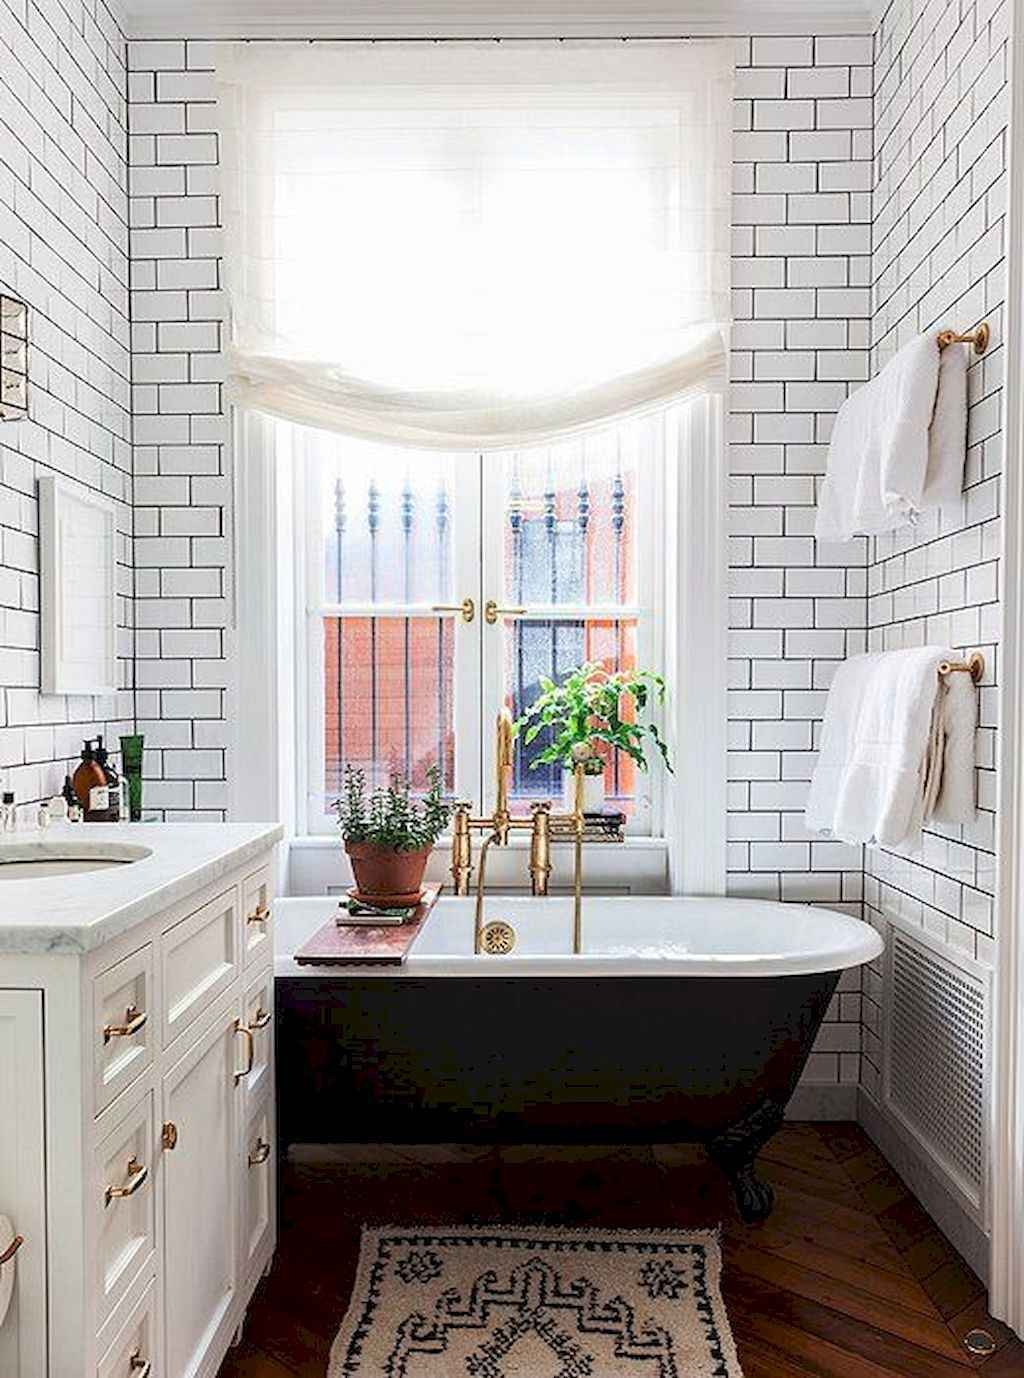 111 awesome small bathroom remodel ideas on a budget (69 ...